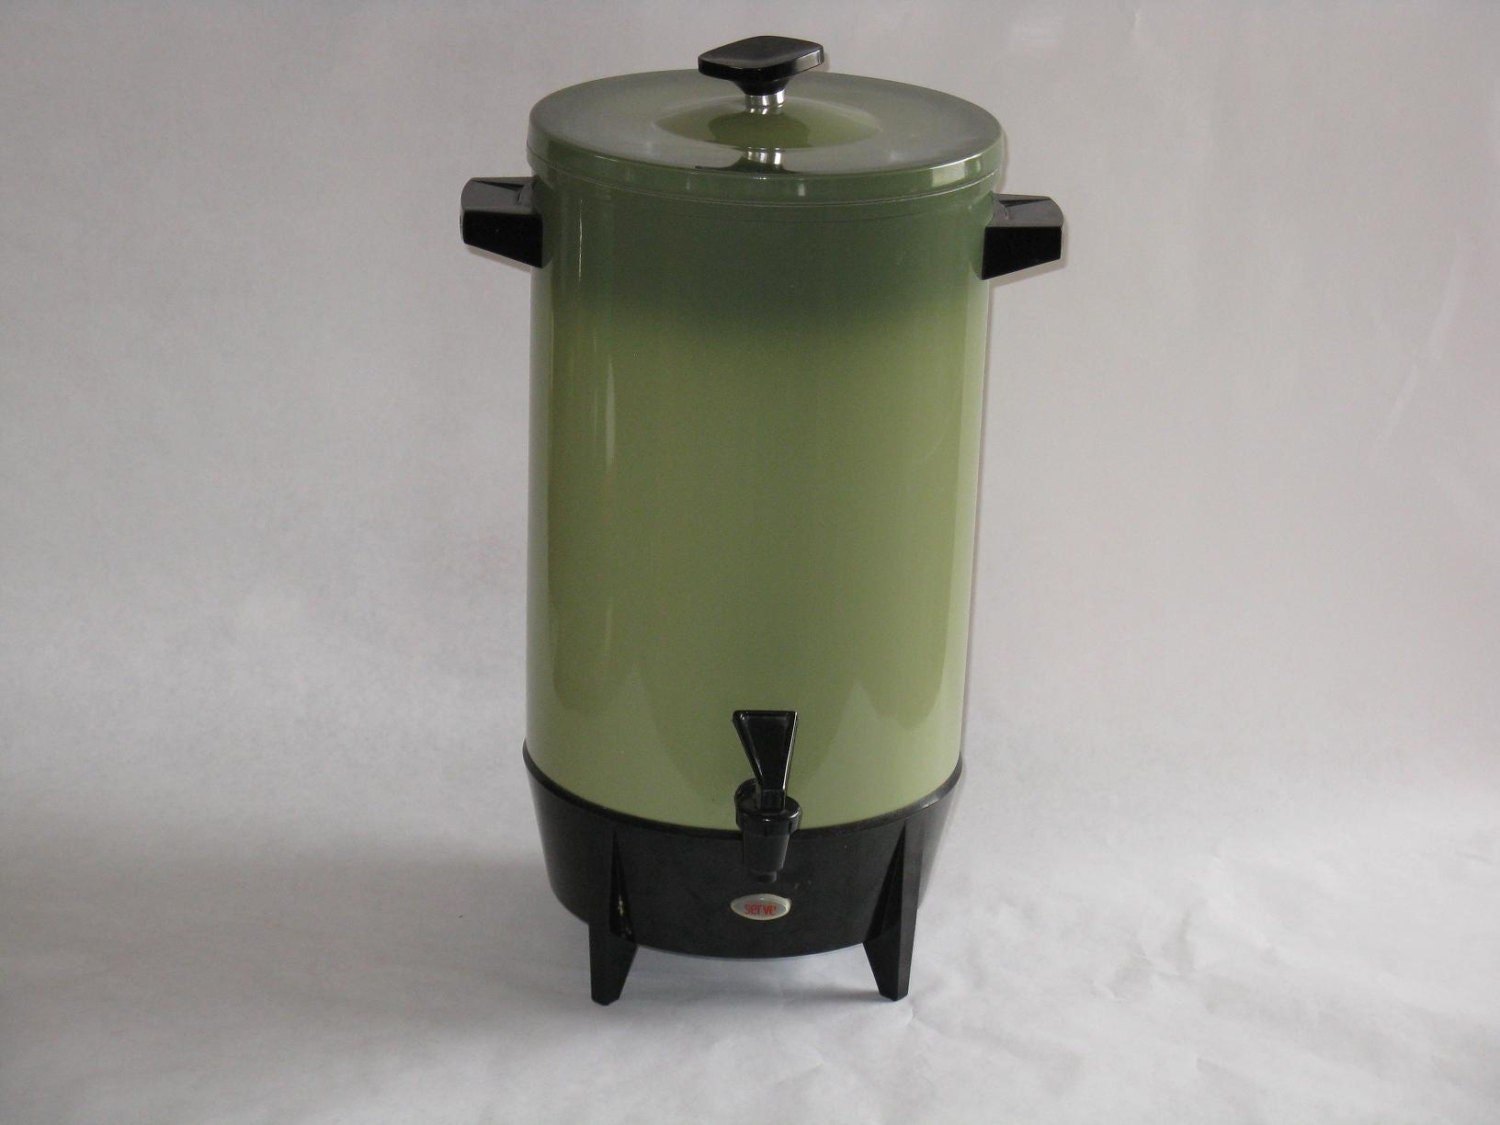 Large Electric Coffee Maker : Large vintage West Bend coffee maker server avocado green